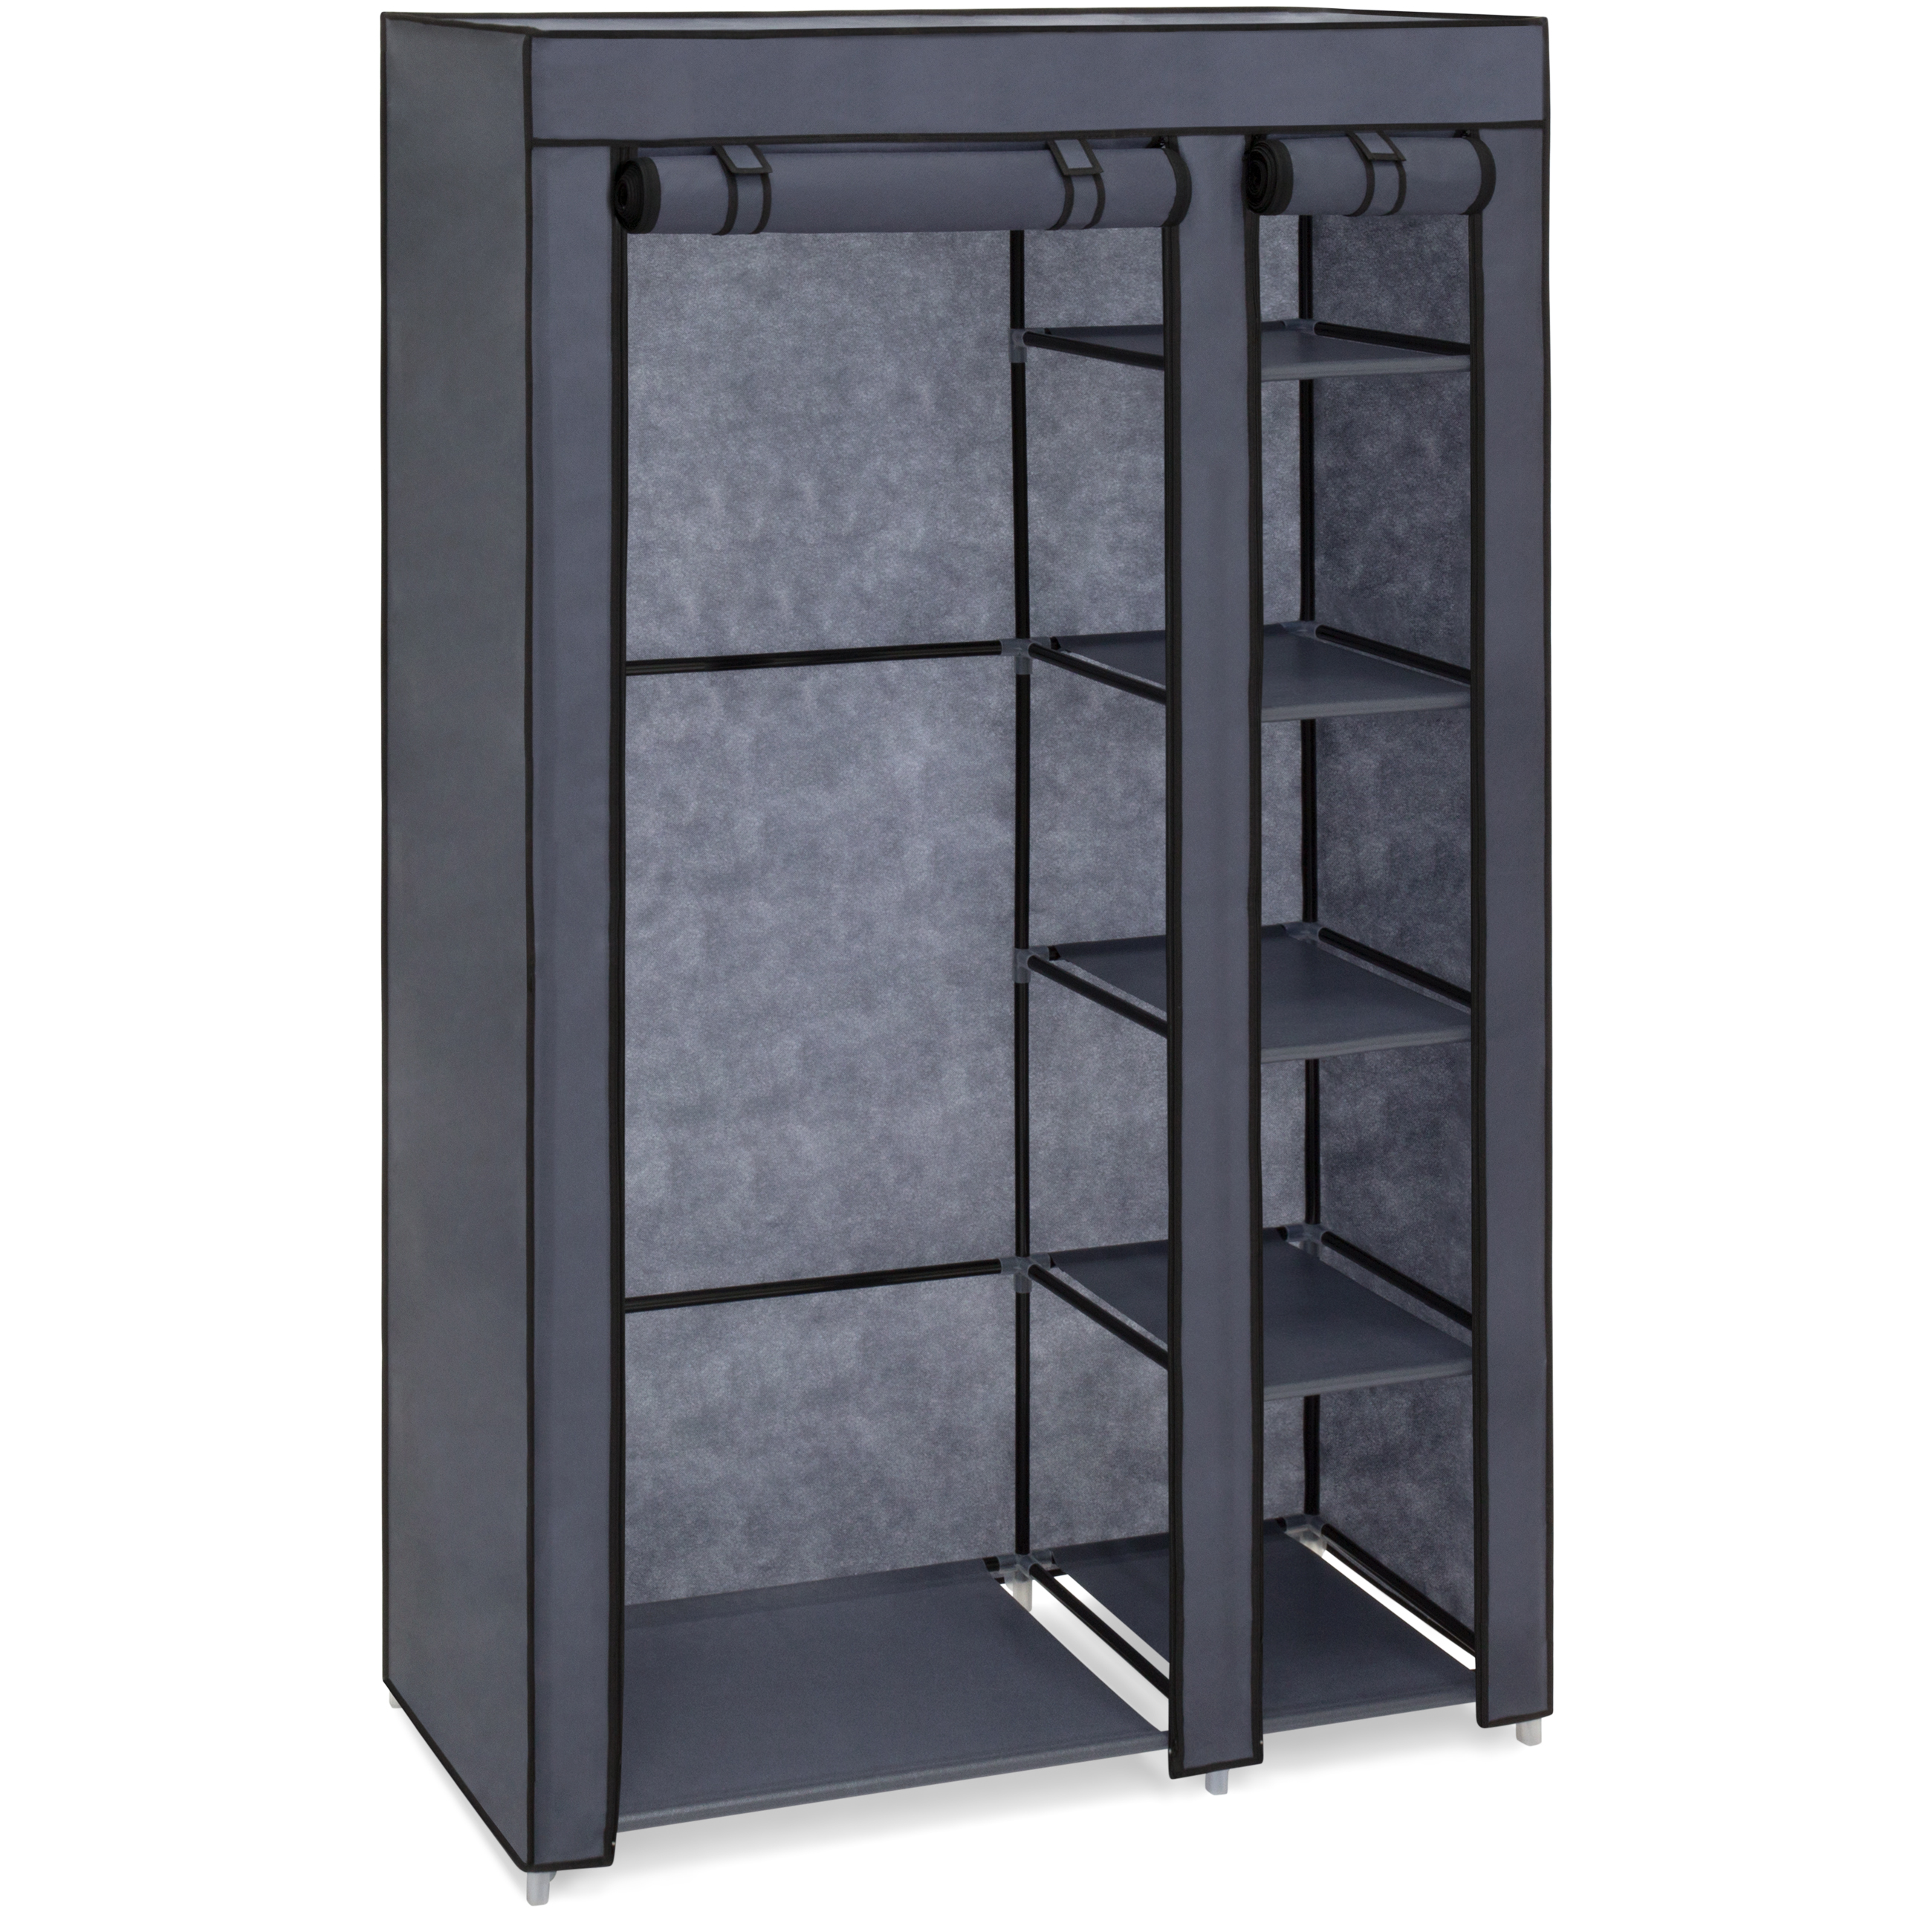 Best Choice Products 6-Shelf Portable Fabric Closet Wardrobe Storage Organizer w/ Cover and Adjustable Rod - Gray